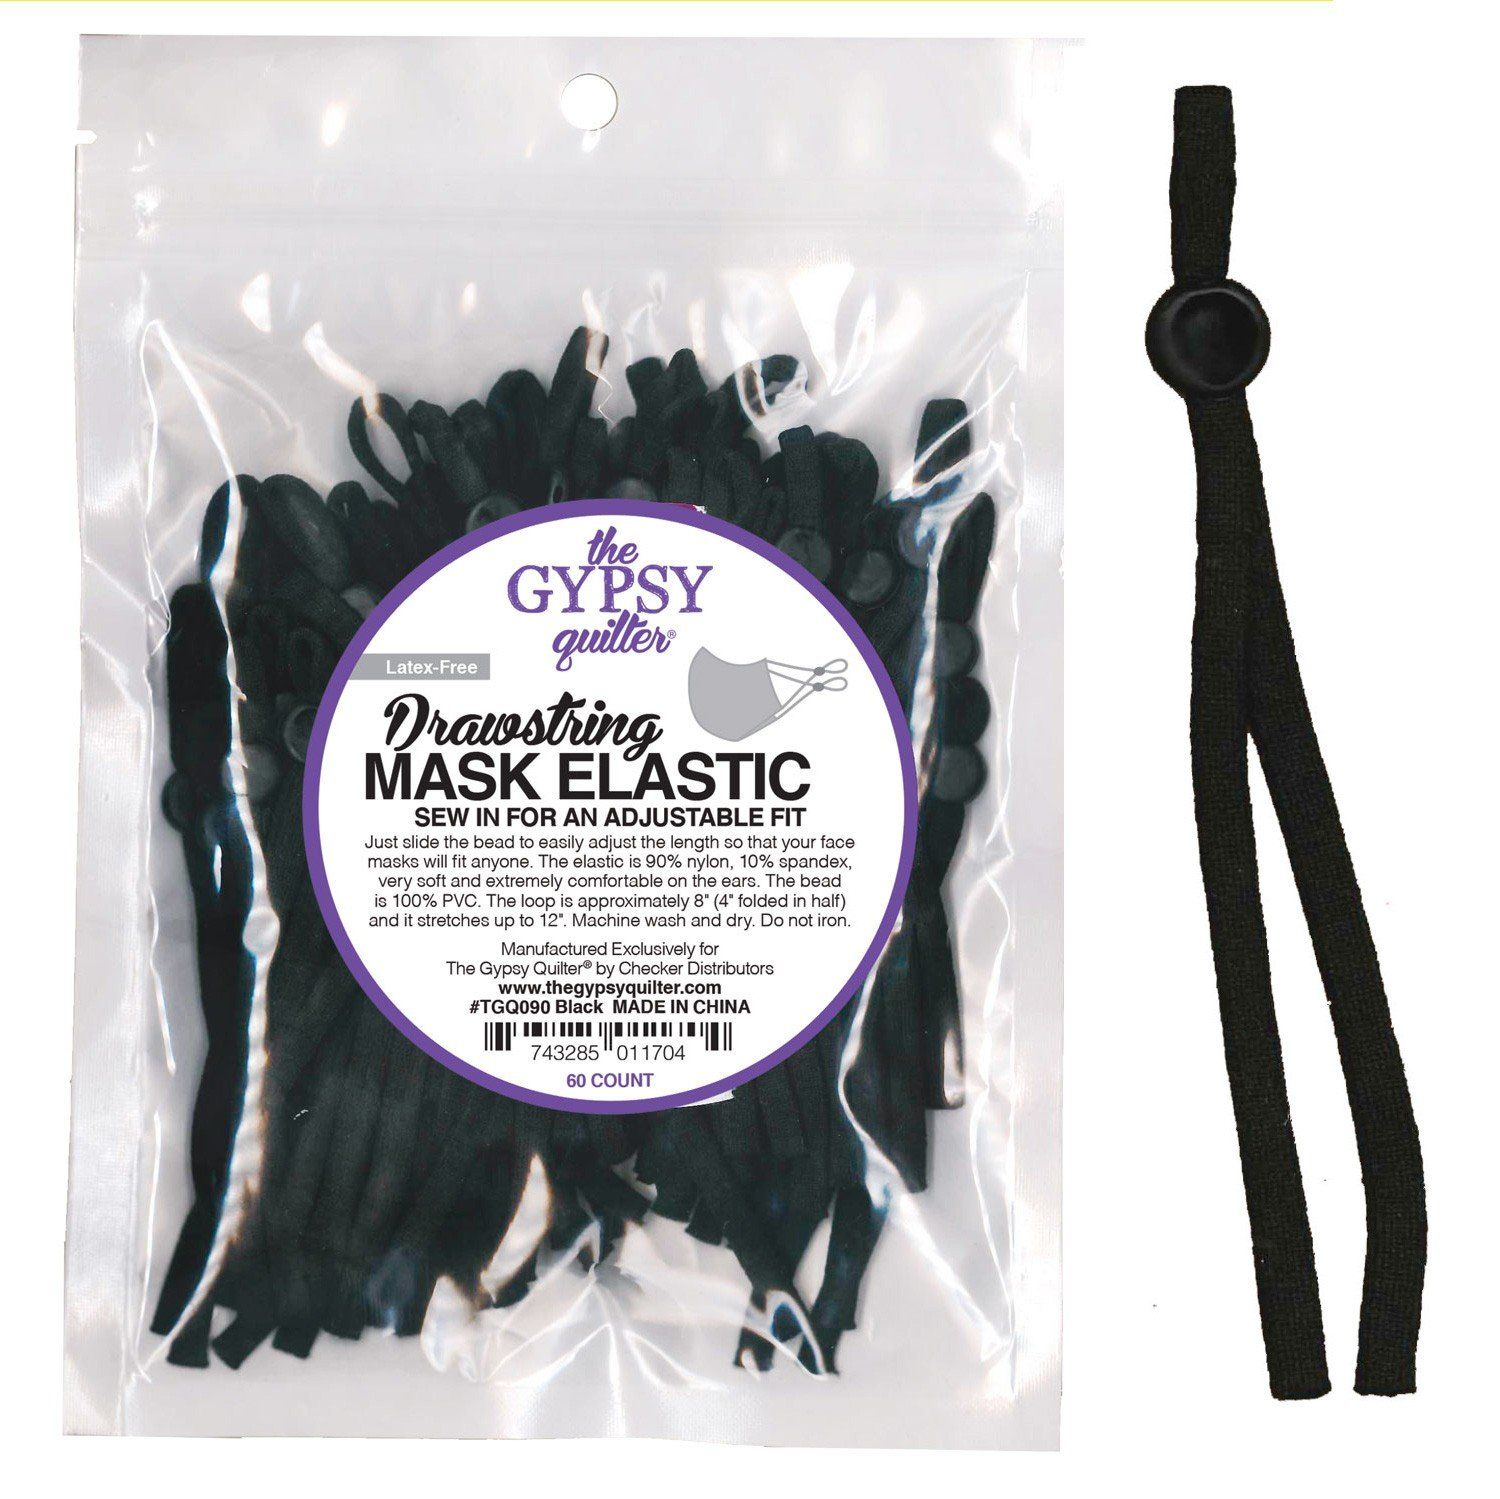 Drawstring Mask Elastic - Black - 60 pk